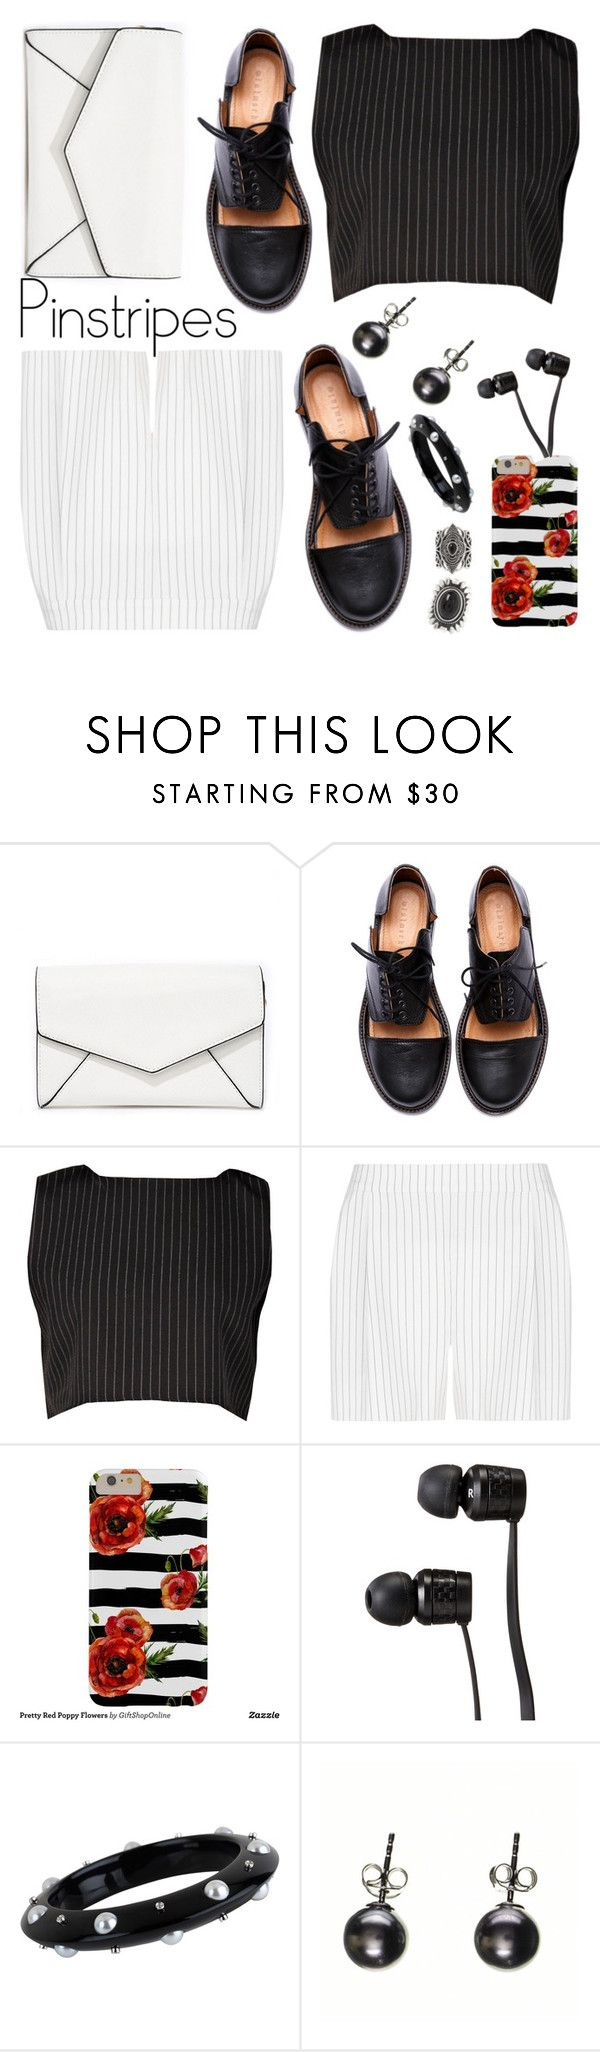 """Pinstripe"" by petalp ❤ liked on Polyvore featuring LULUS, Minimarket, BCBGMAXAZRIA, Vans, Miriam Salat, Black, New Look, shorts and ootd"